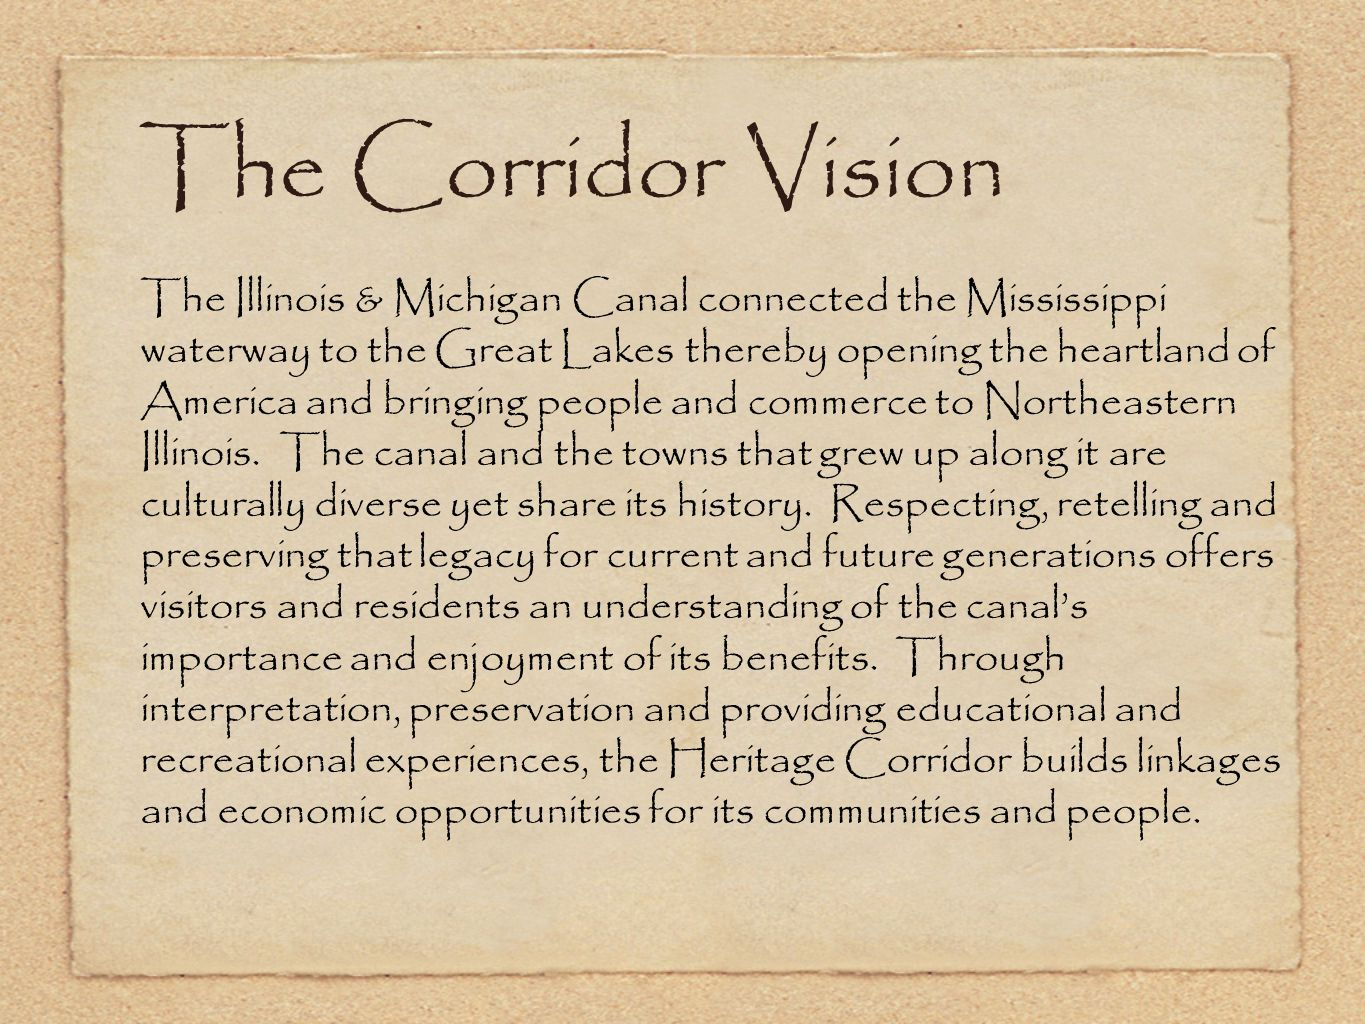 The Corridor Vision The Illinois & Michigan Canal connected the Mississippi waterway to the Great Lakes thereby opening the heartland of America and bringing people and commerce to Northeastern Illinois.